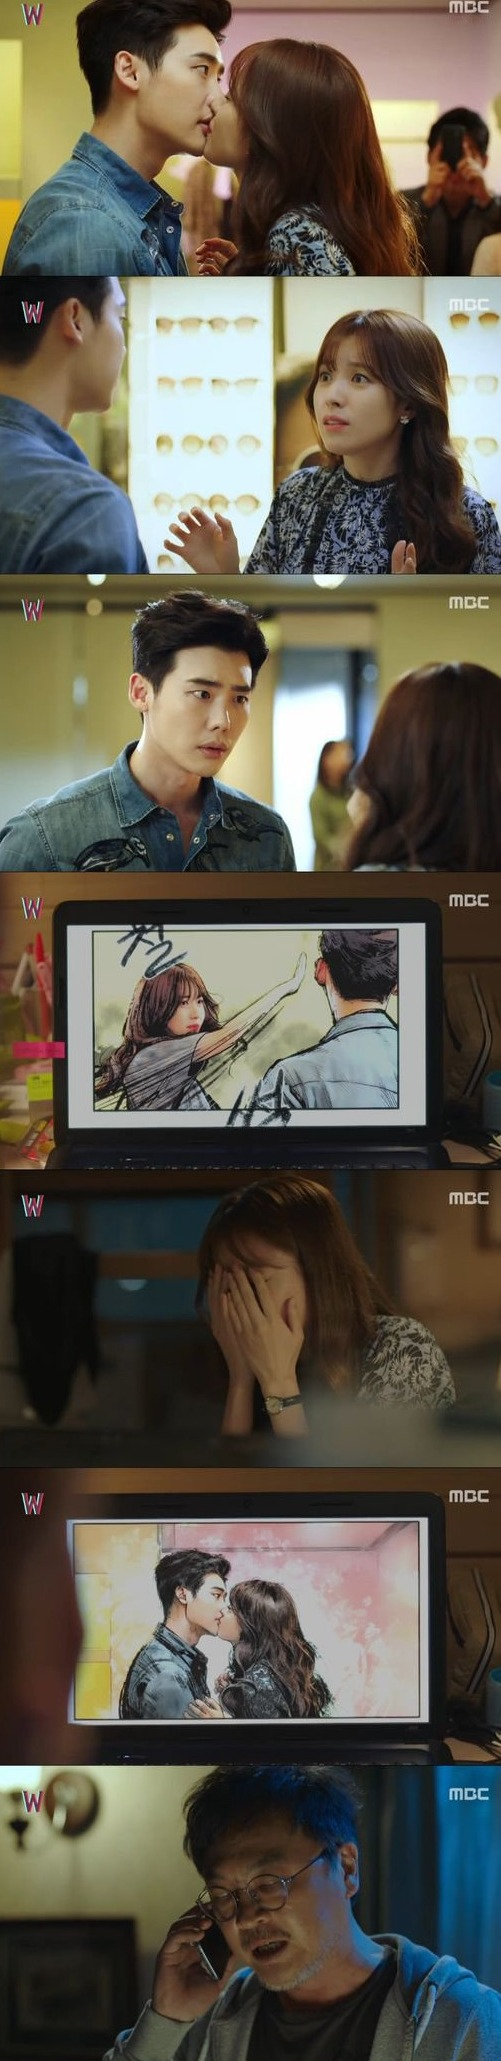 Added episode 2 captures for the Korean drama 'W'.